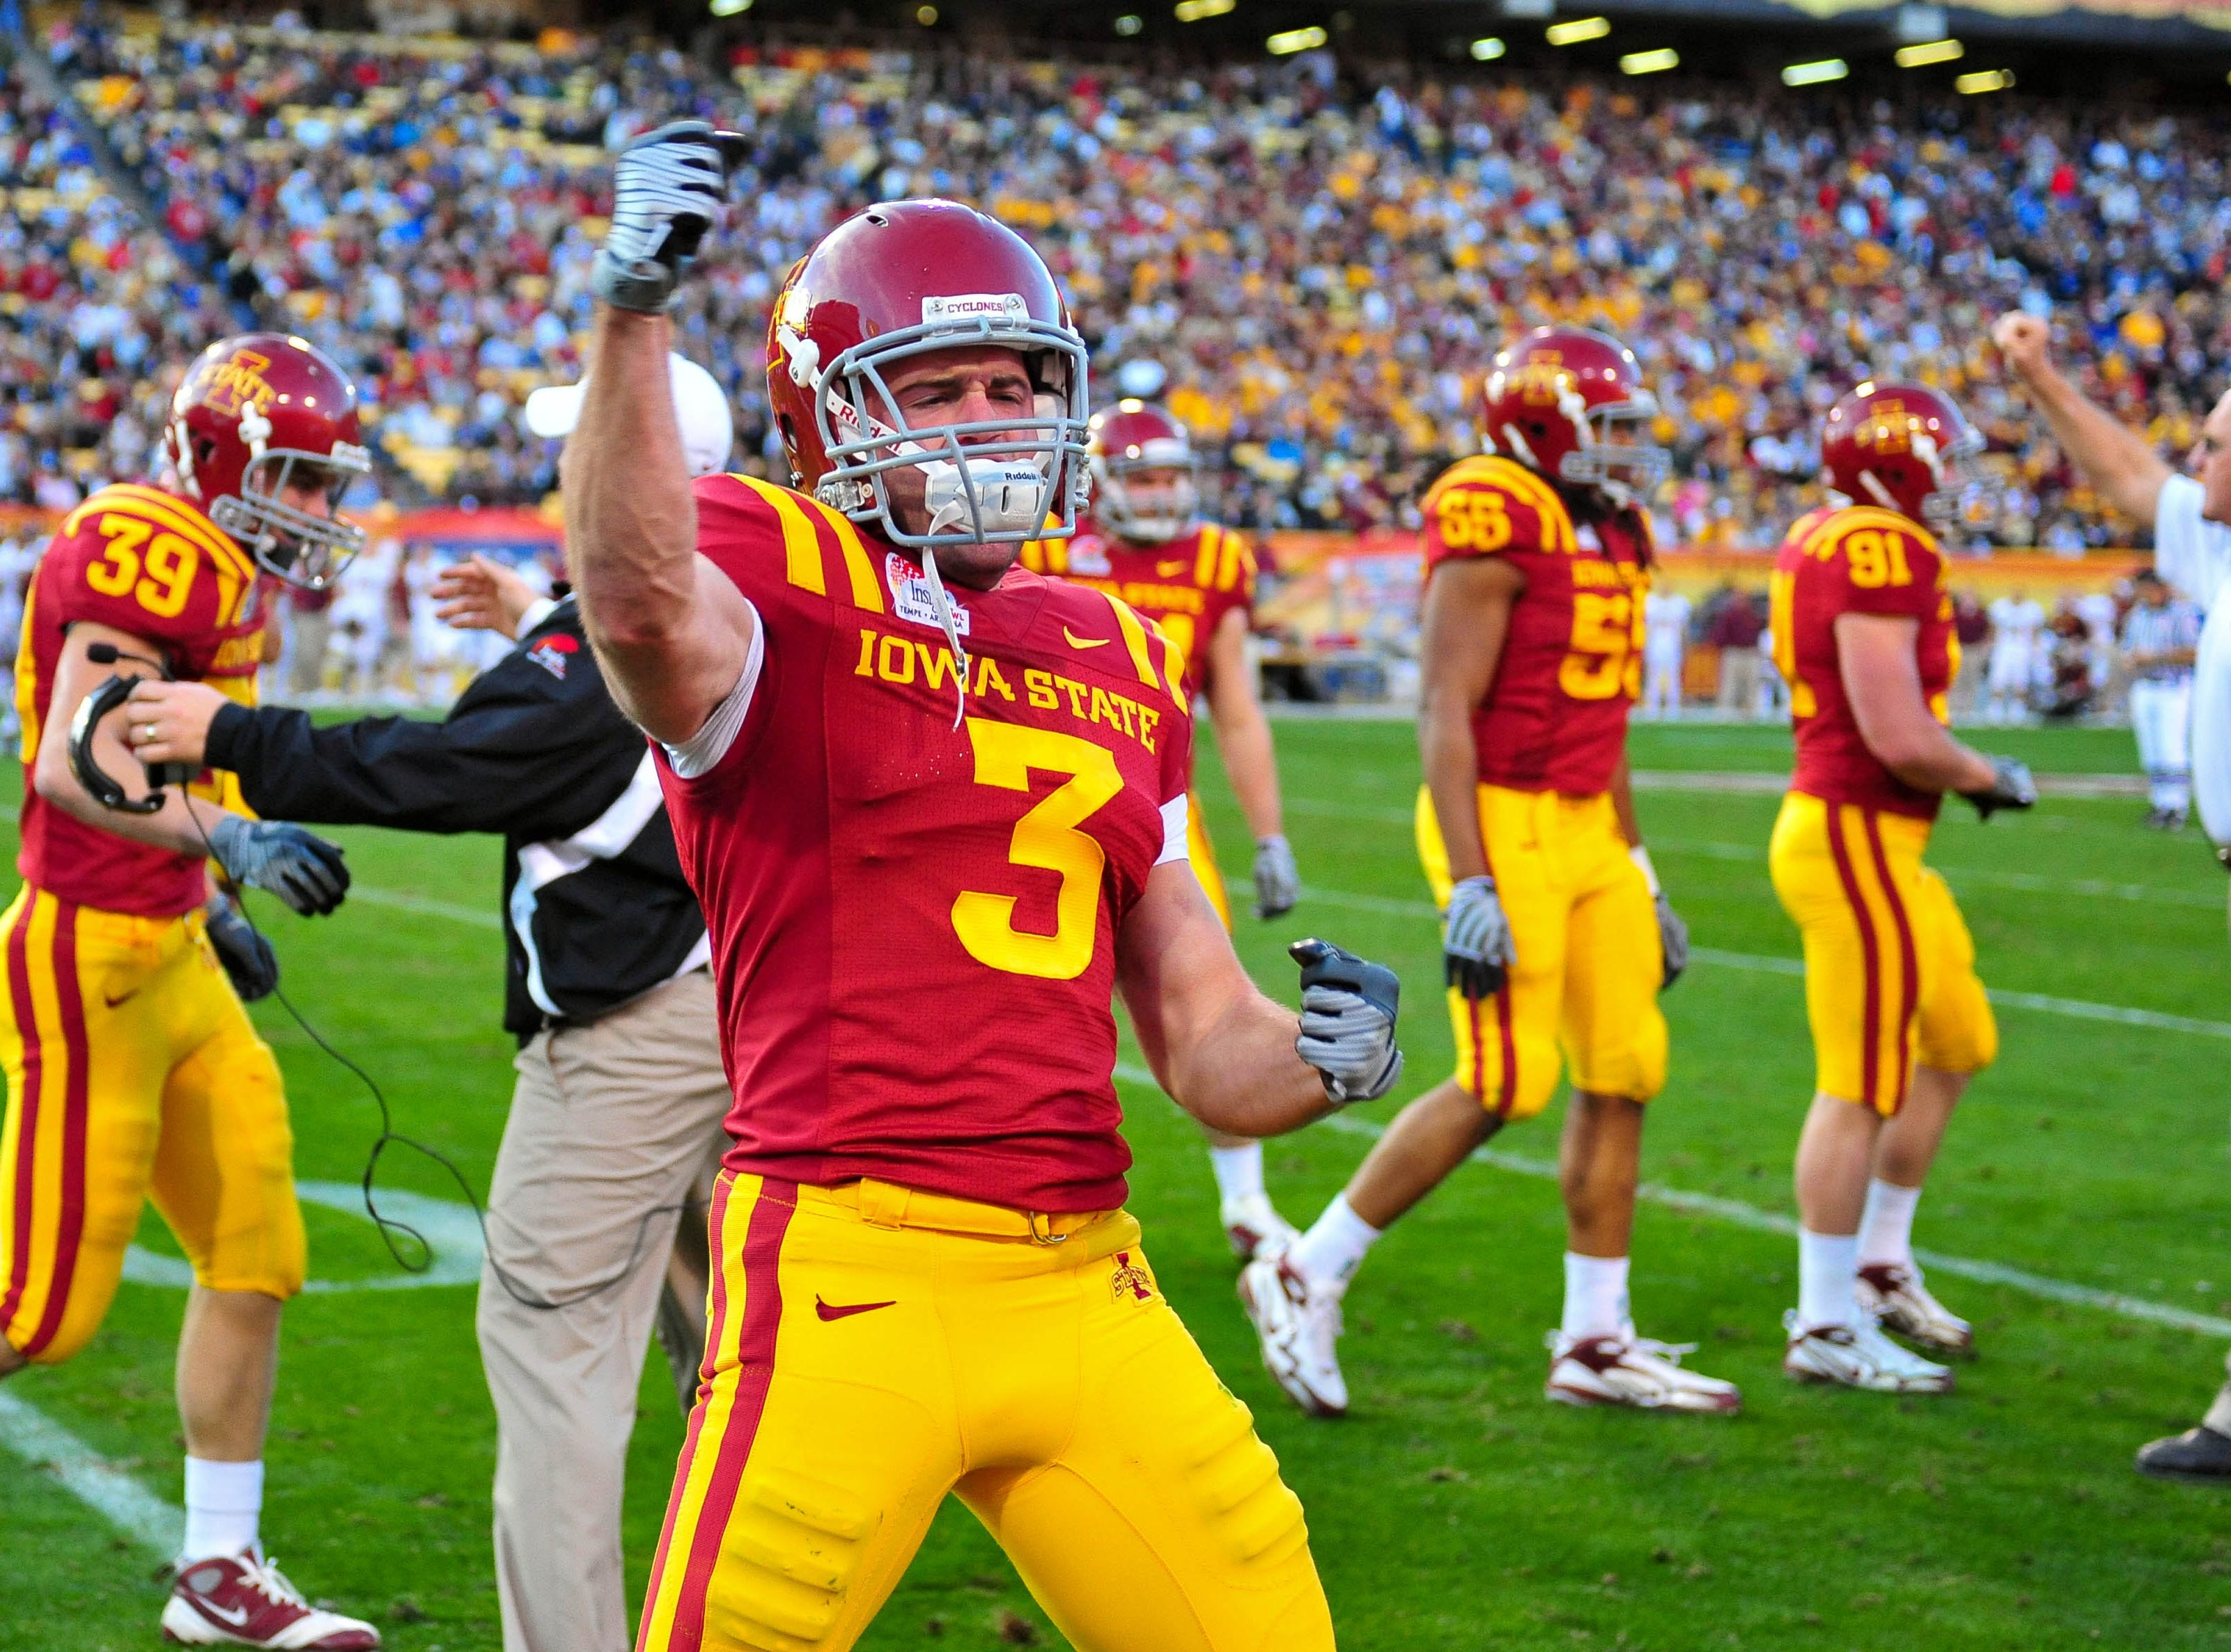 Dec 31, 2009; Tempe, AZ, USA; Iowa State Cyclones cornerback Zac Sandvig (3) celebrates a special teams tackle in the 2nd quarter of a game against the Minnesota Golden Gophers in the 2009 Insight Bowl at Sun Devil Stadium.  Mandatory Credit: Chris Morrison-USA TODAY Sports